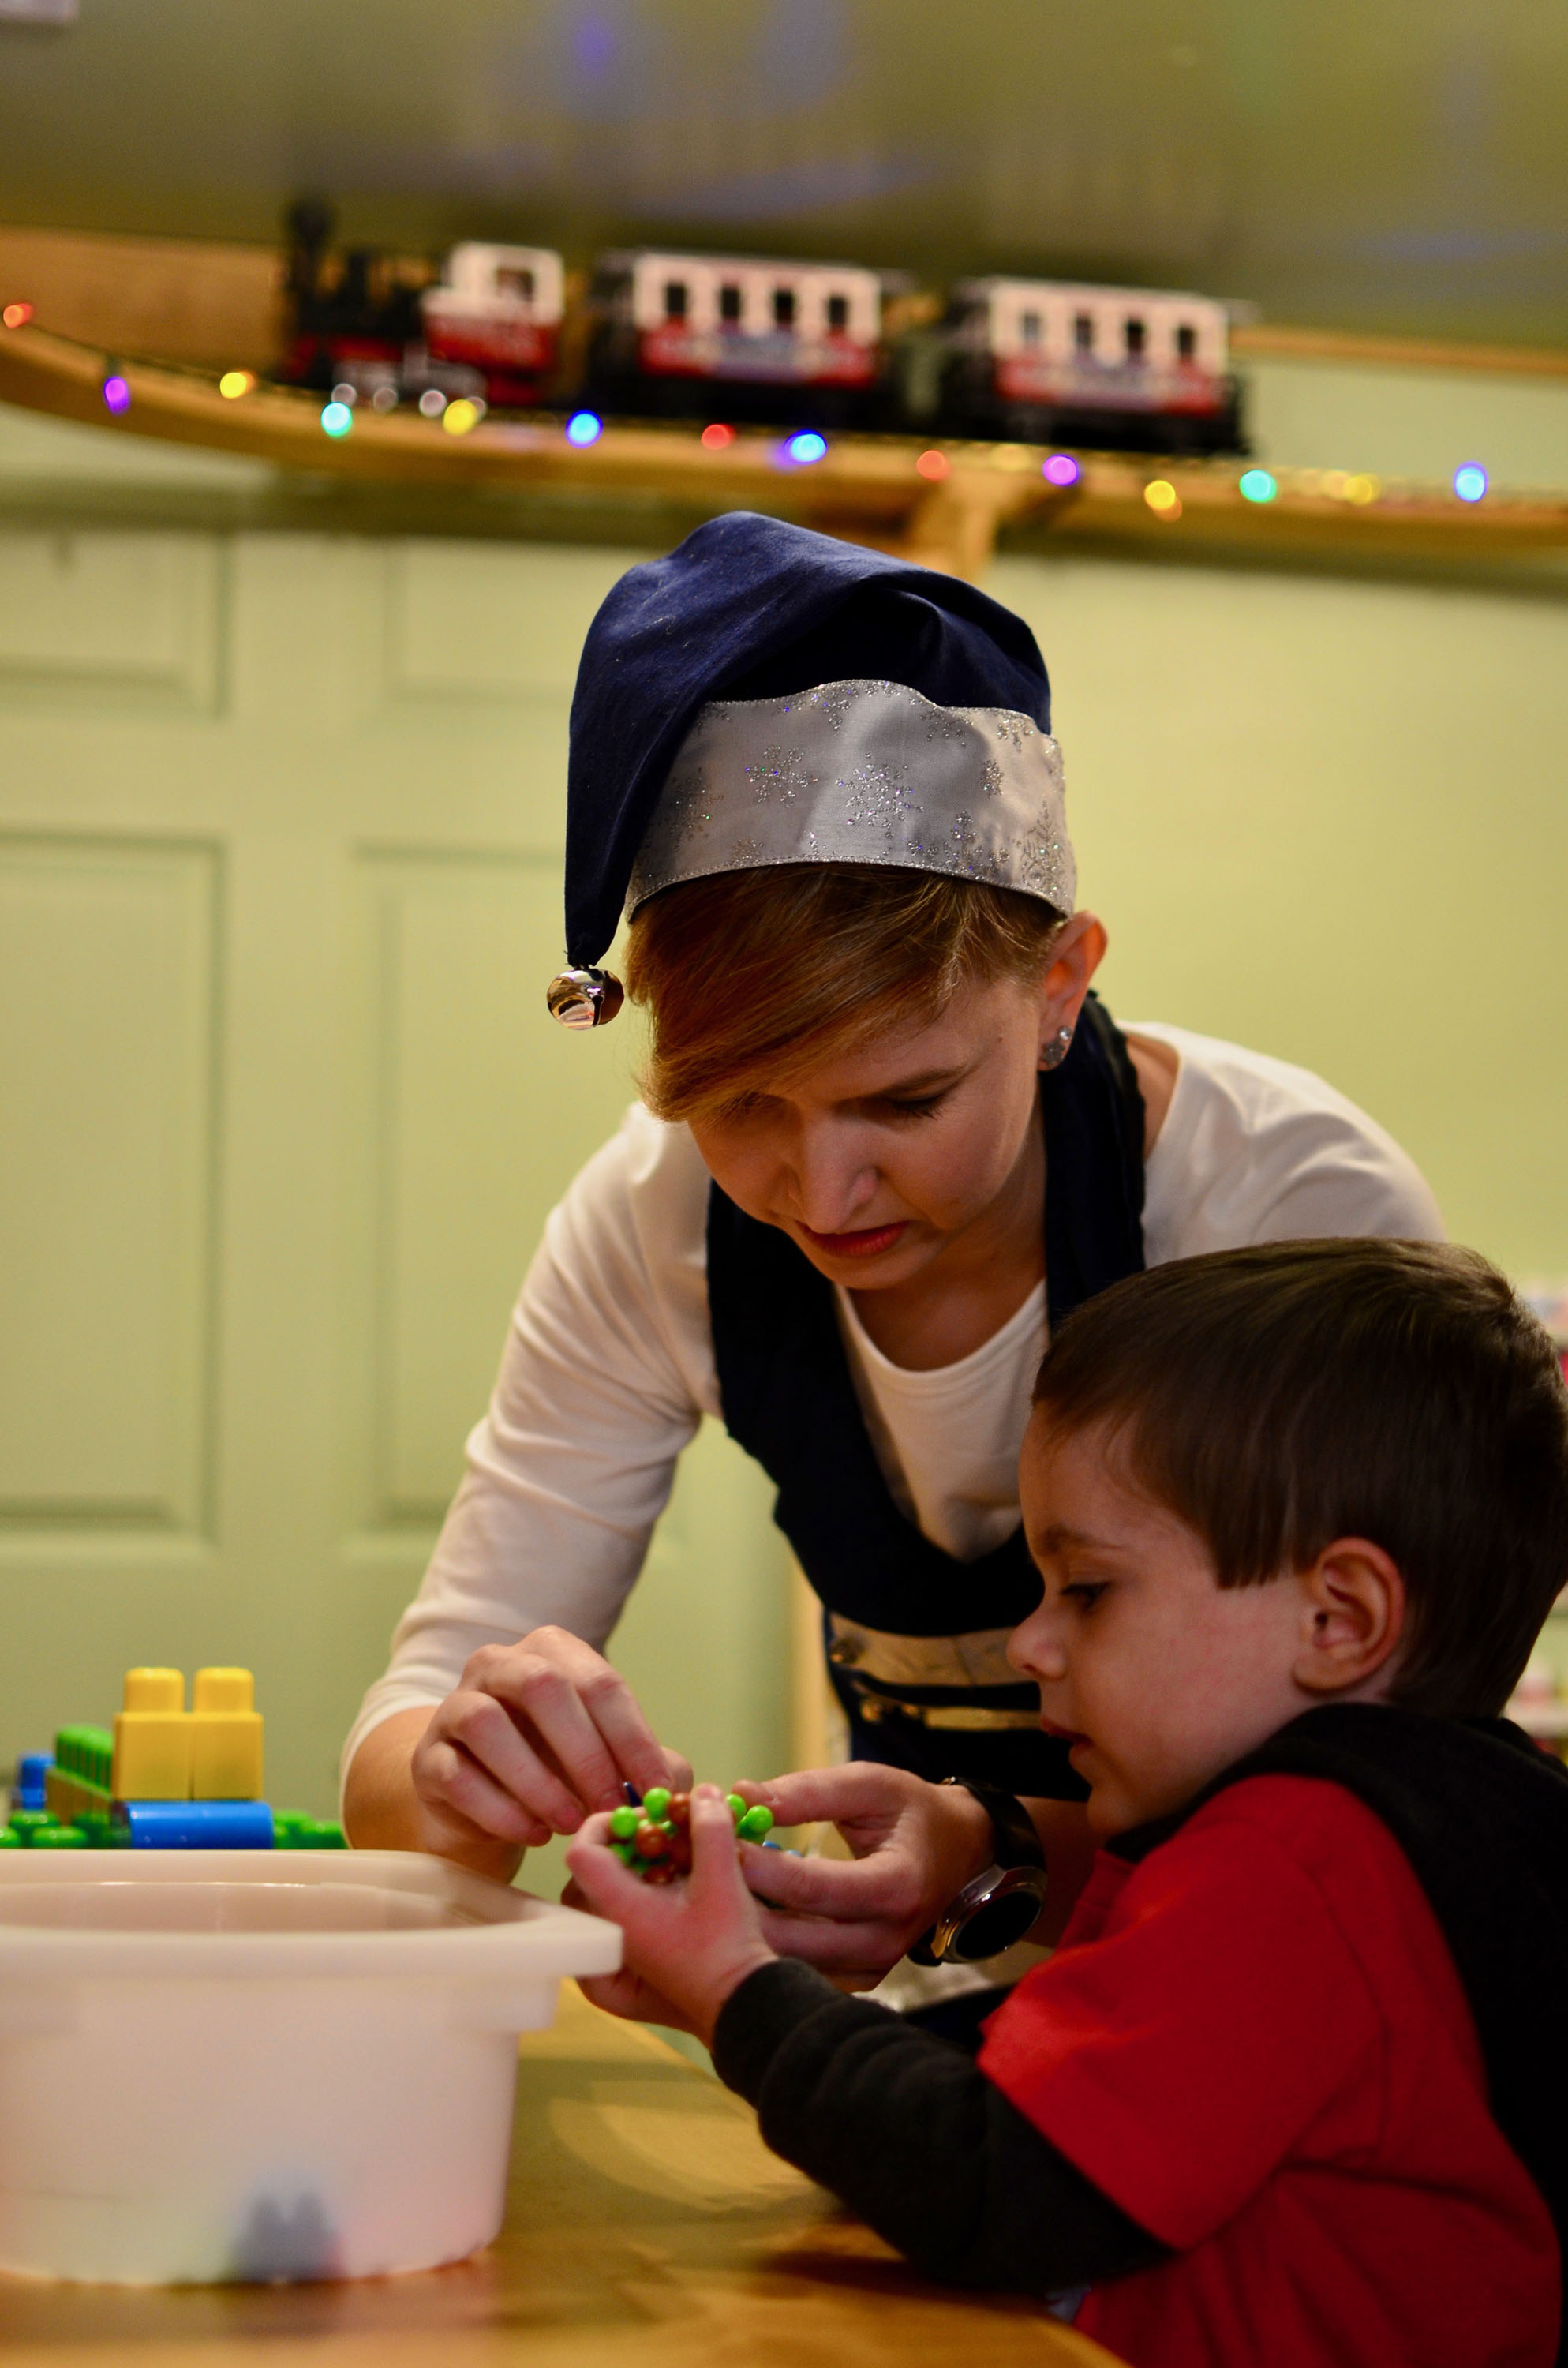 Our Mission - To provide Christmas experiences 365 days a year for children and their families who are battling life threatening illnesses.